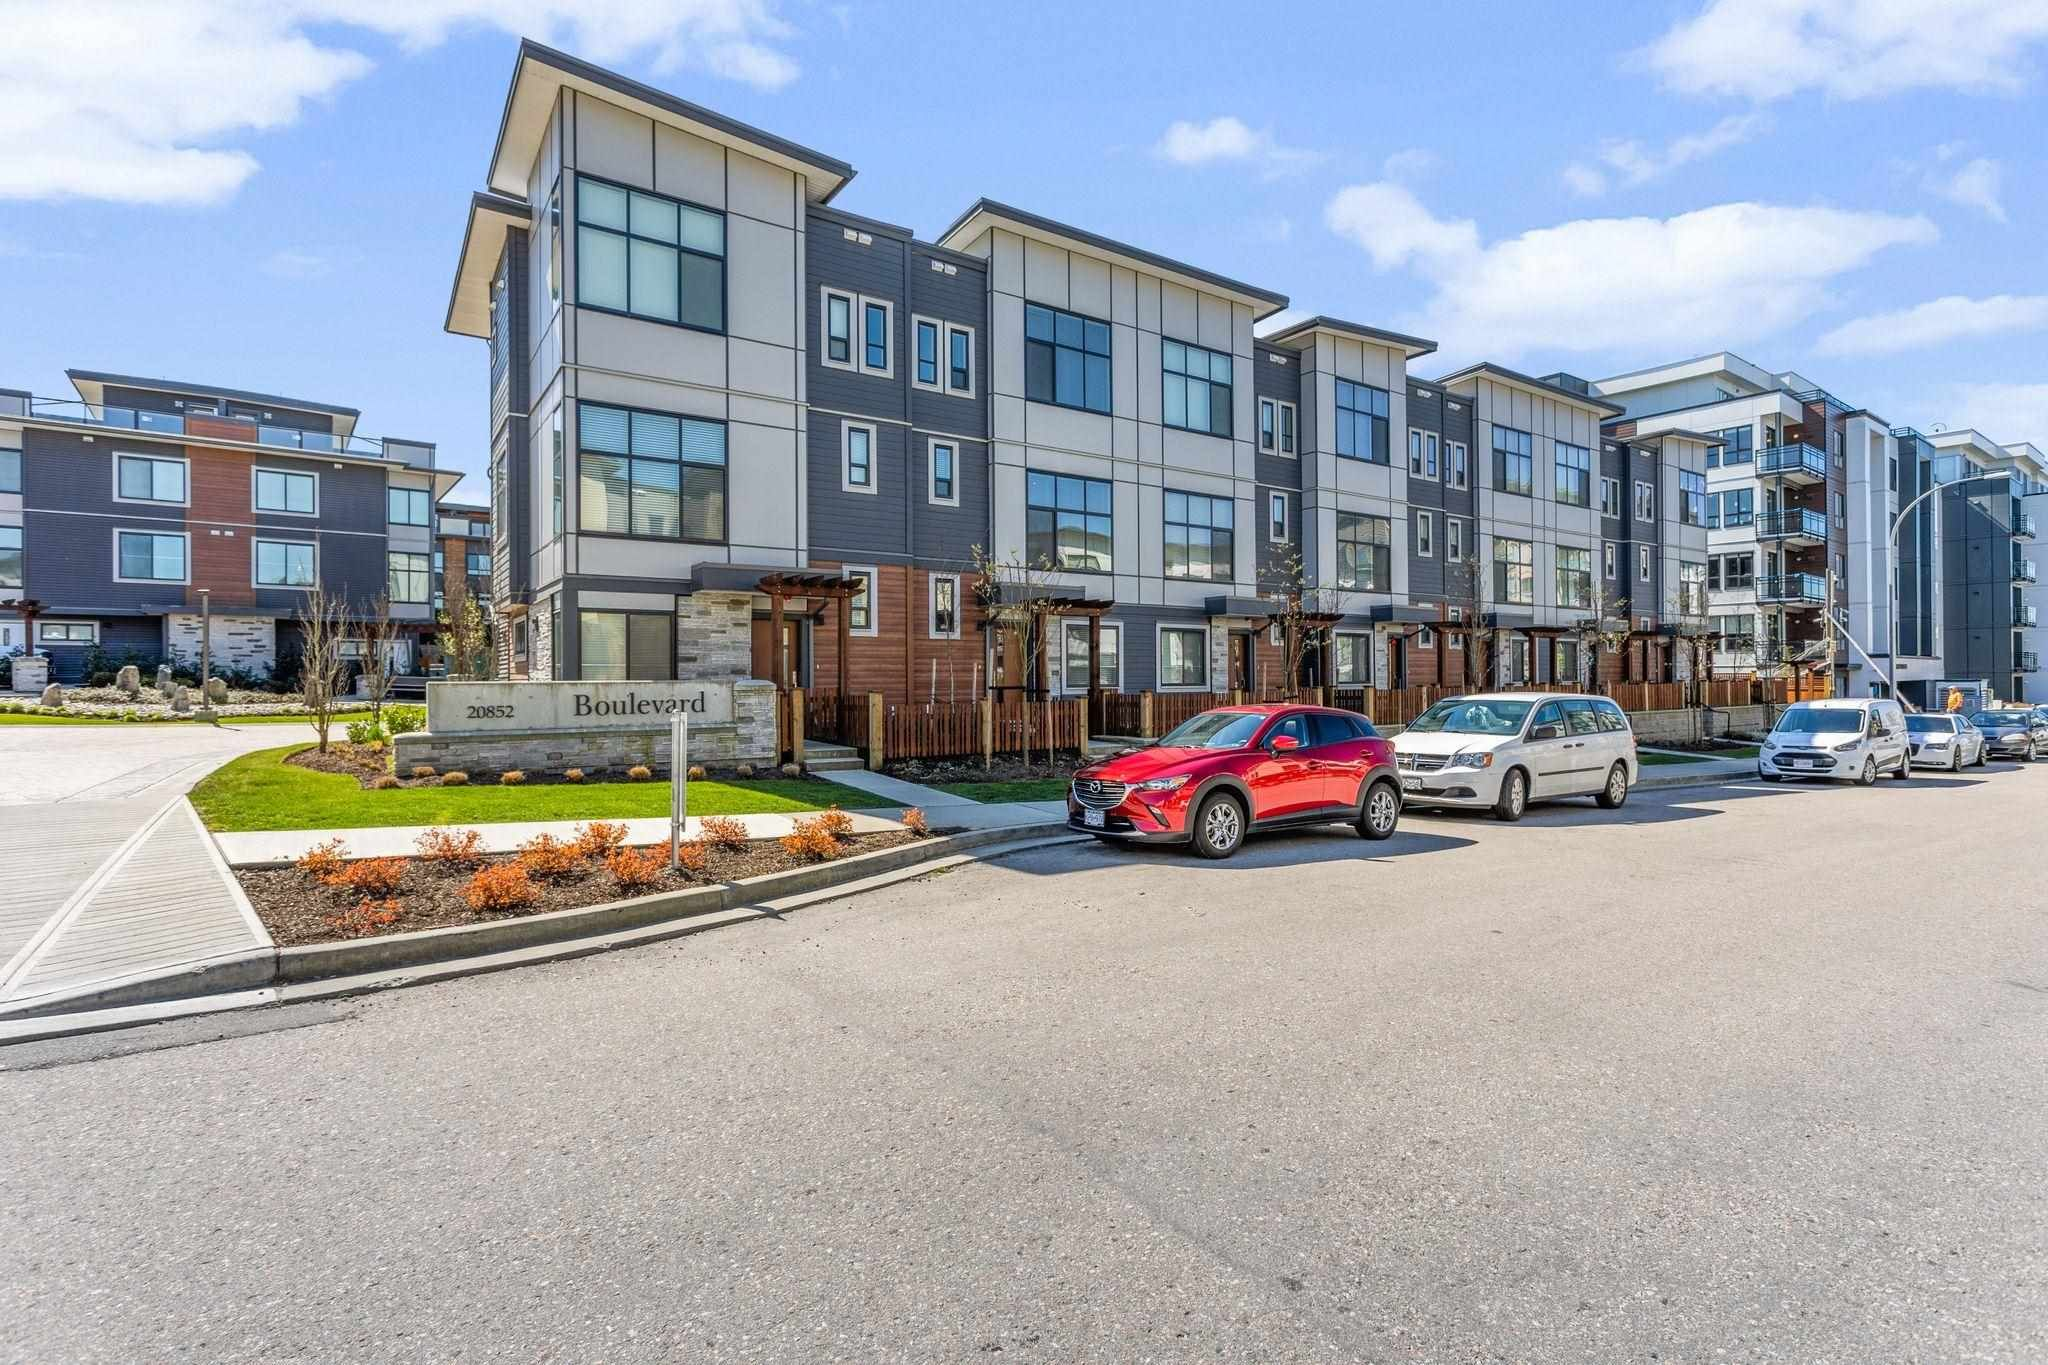 """Main Photo: 36 20852 78B Avenue in Langley: Willoughby Heights Townhouse for sale in """"The Boulevard (South)"""" : MLS®# R2605472"""